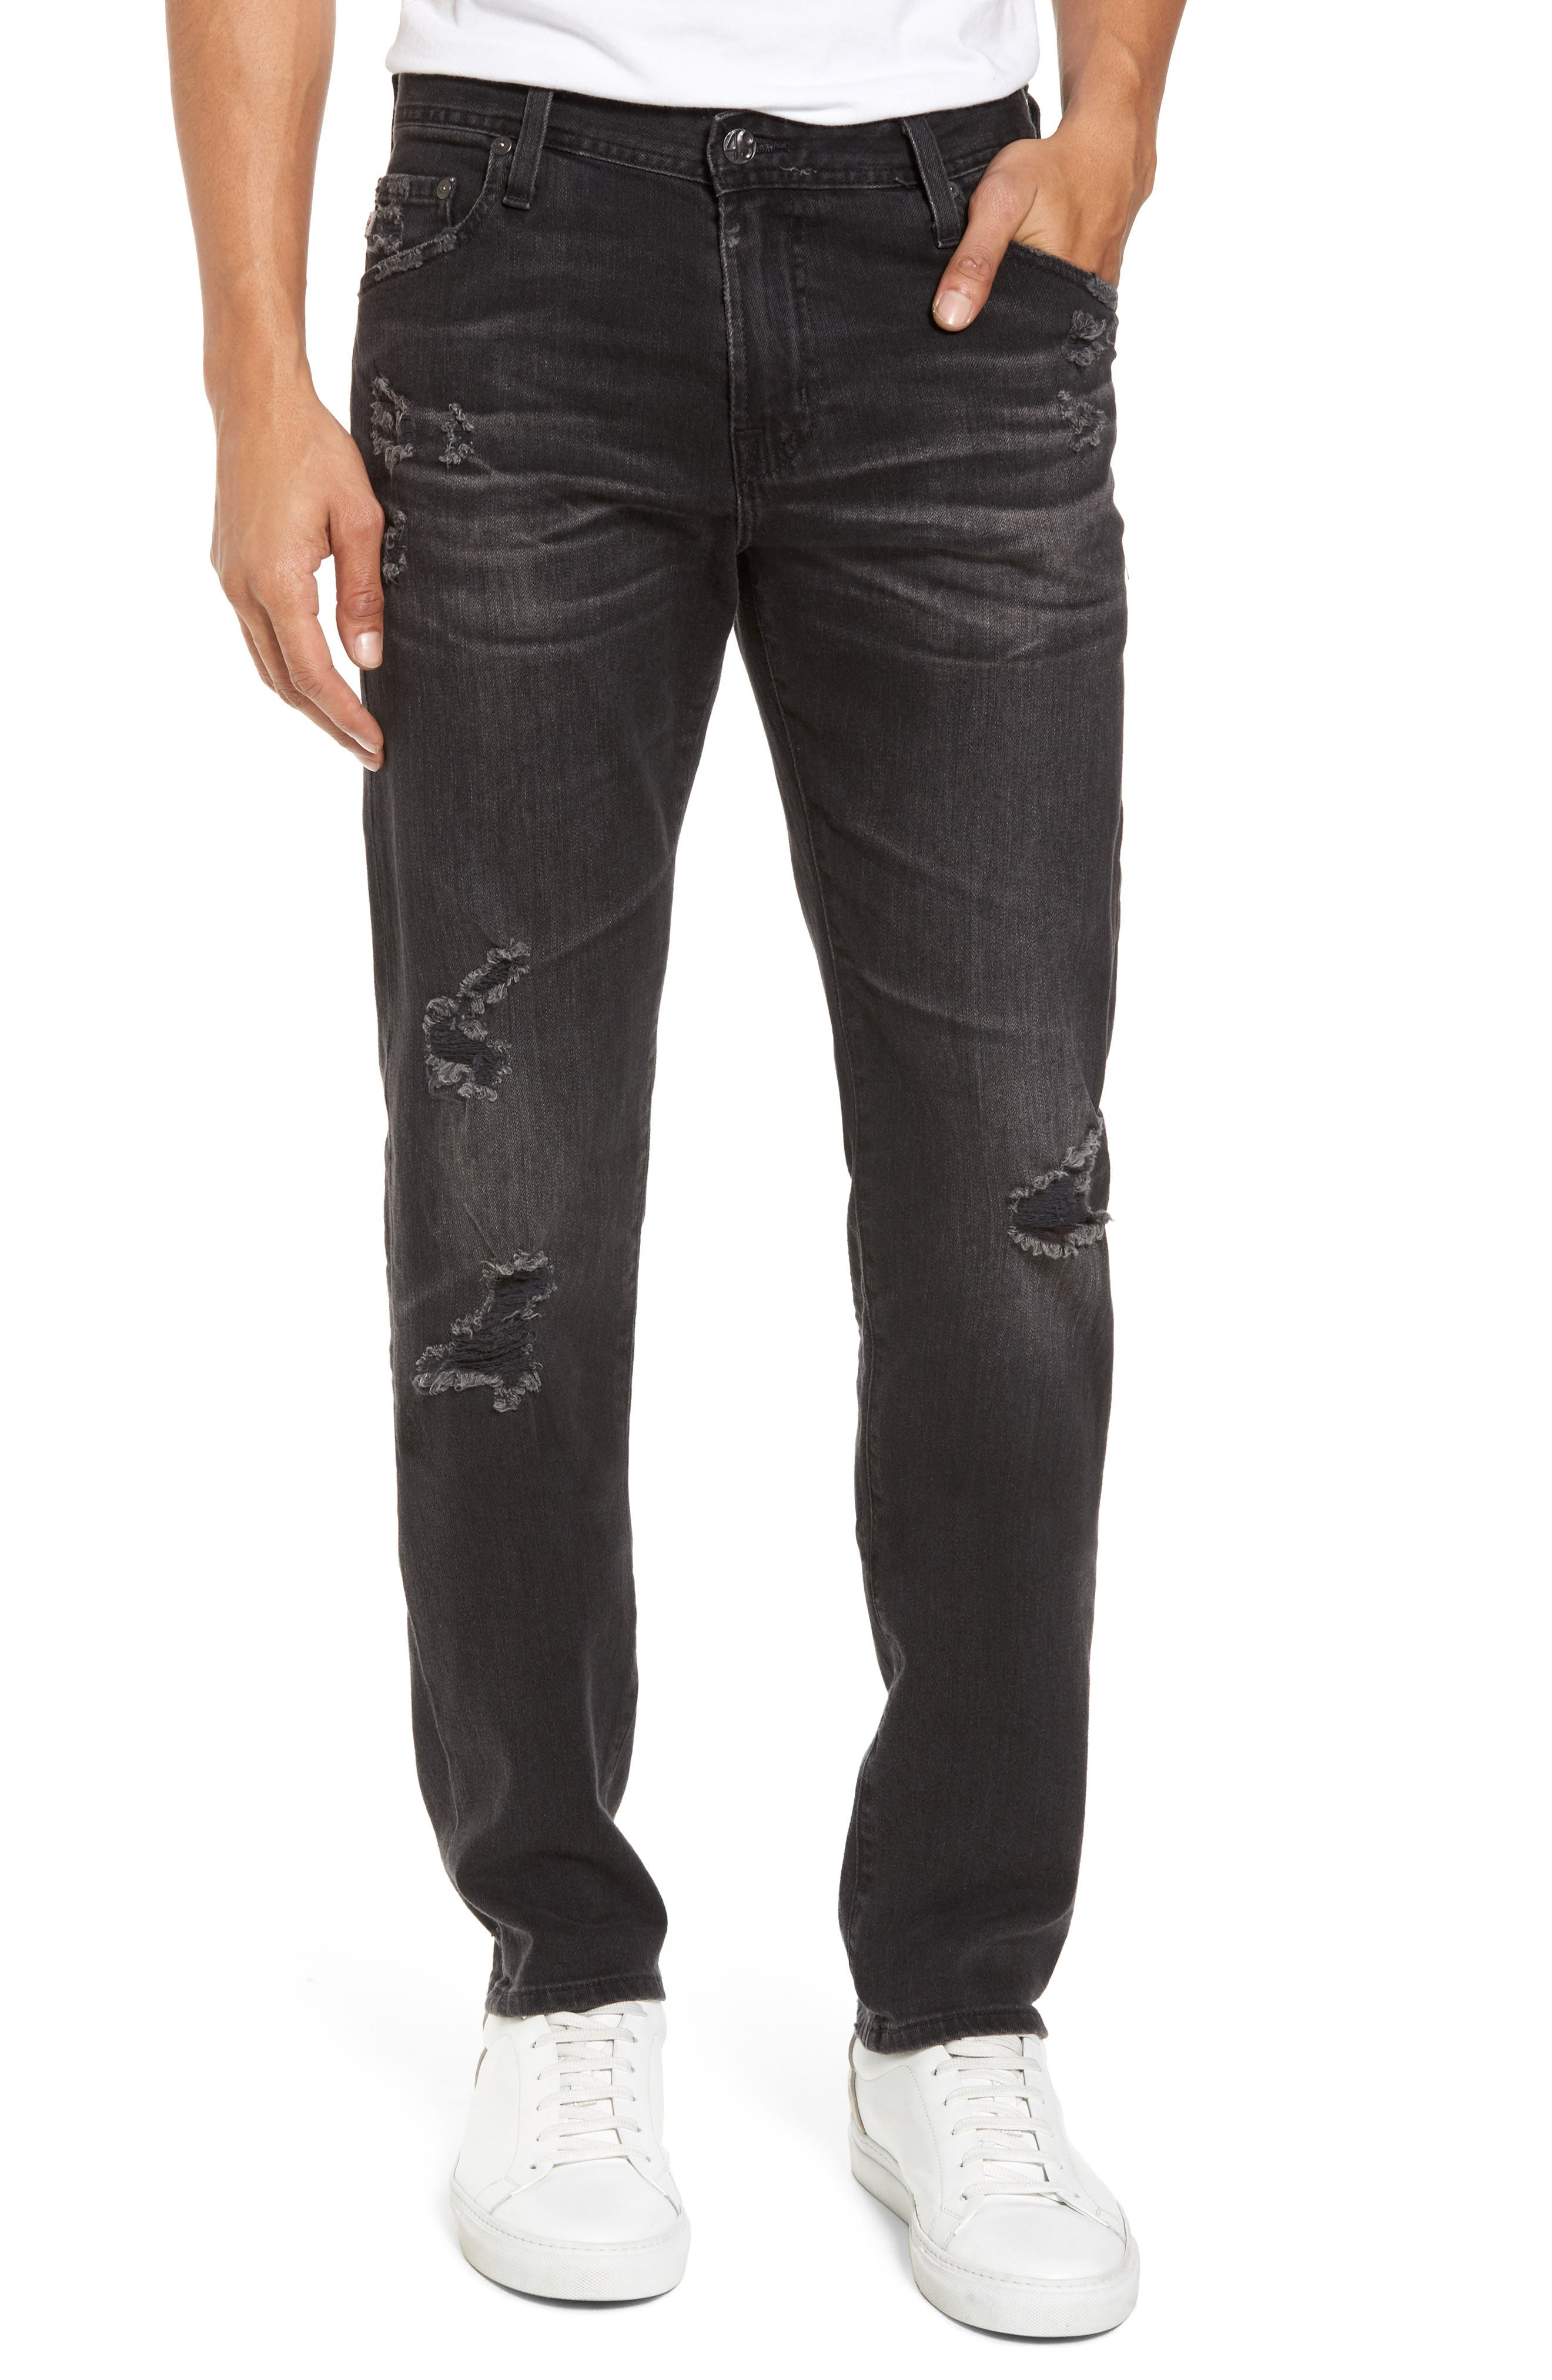 Tellis Slim Fit Jeans,                             Main thumbnail 1, color,